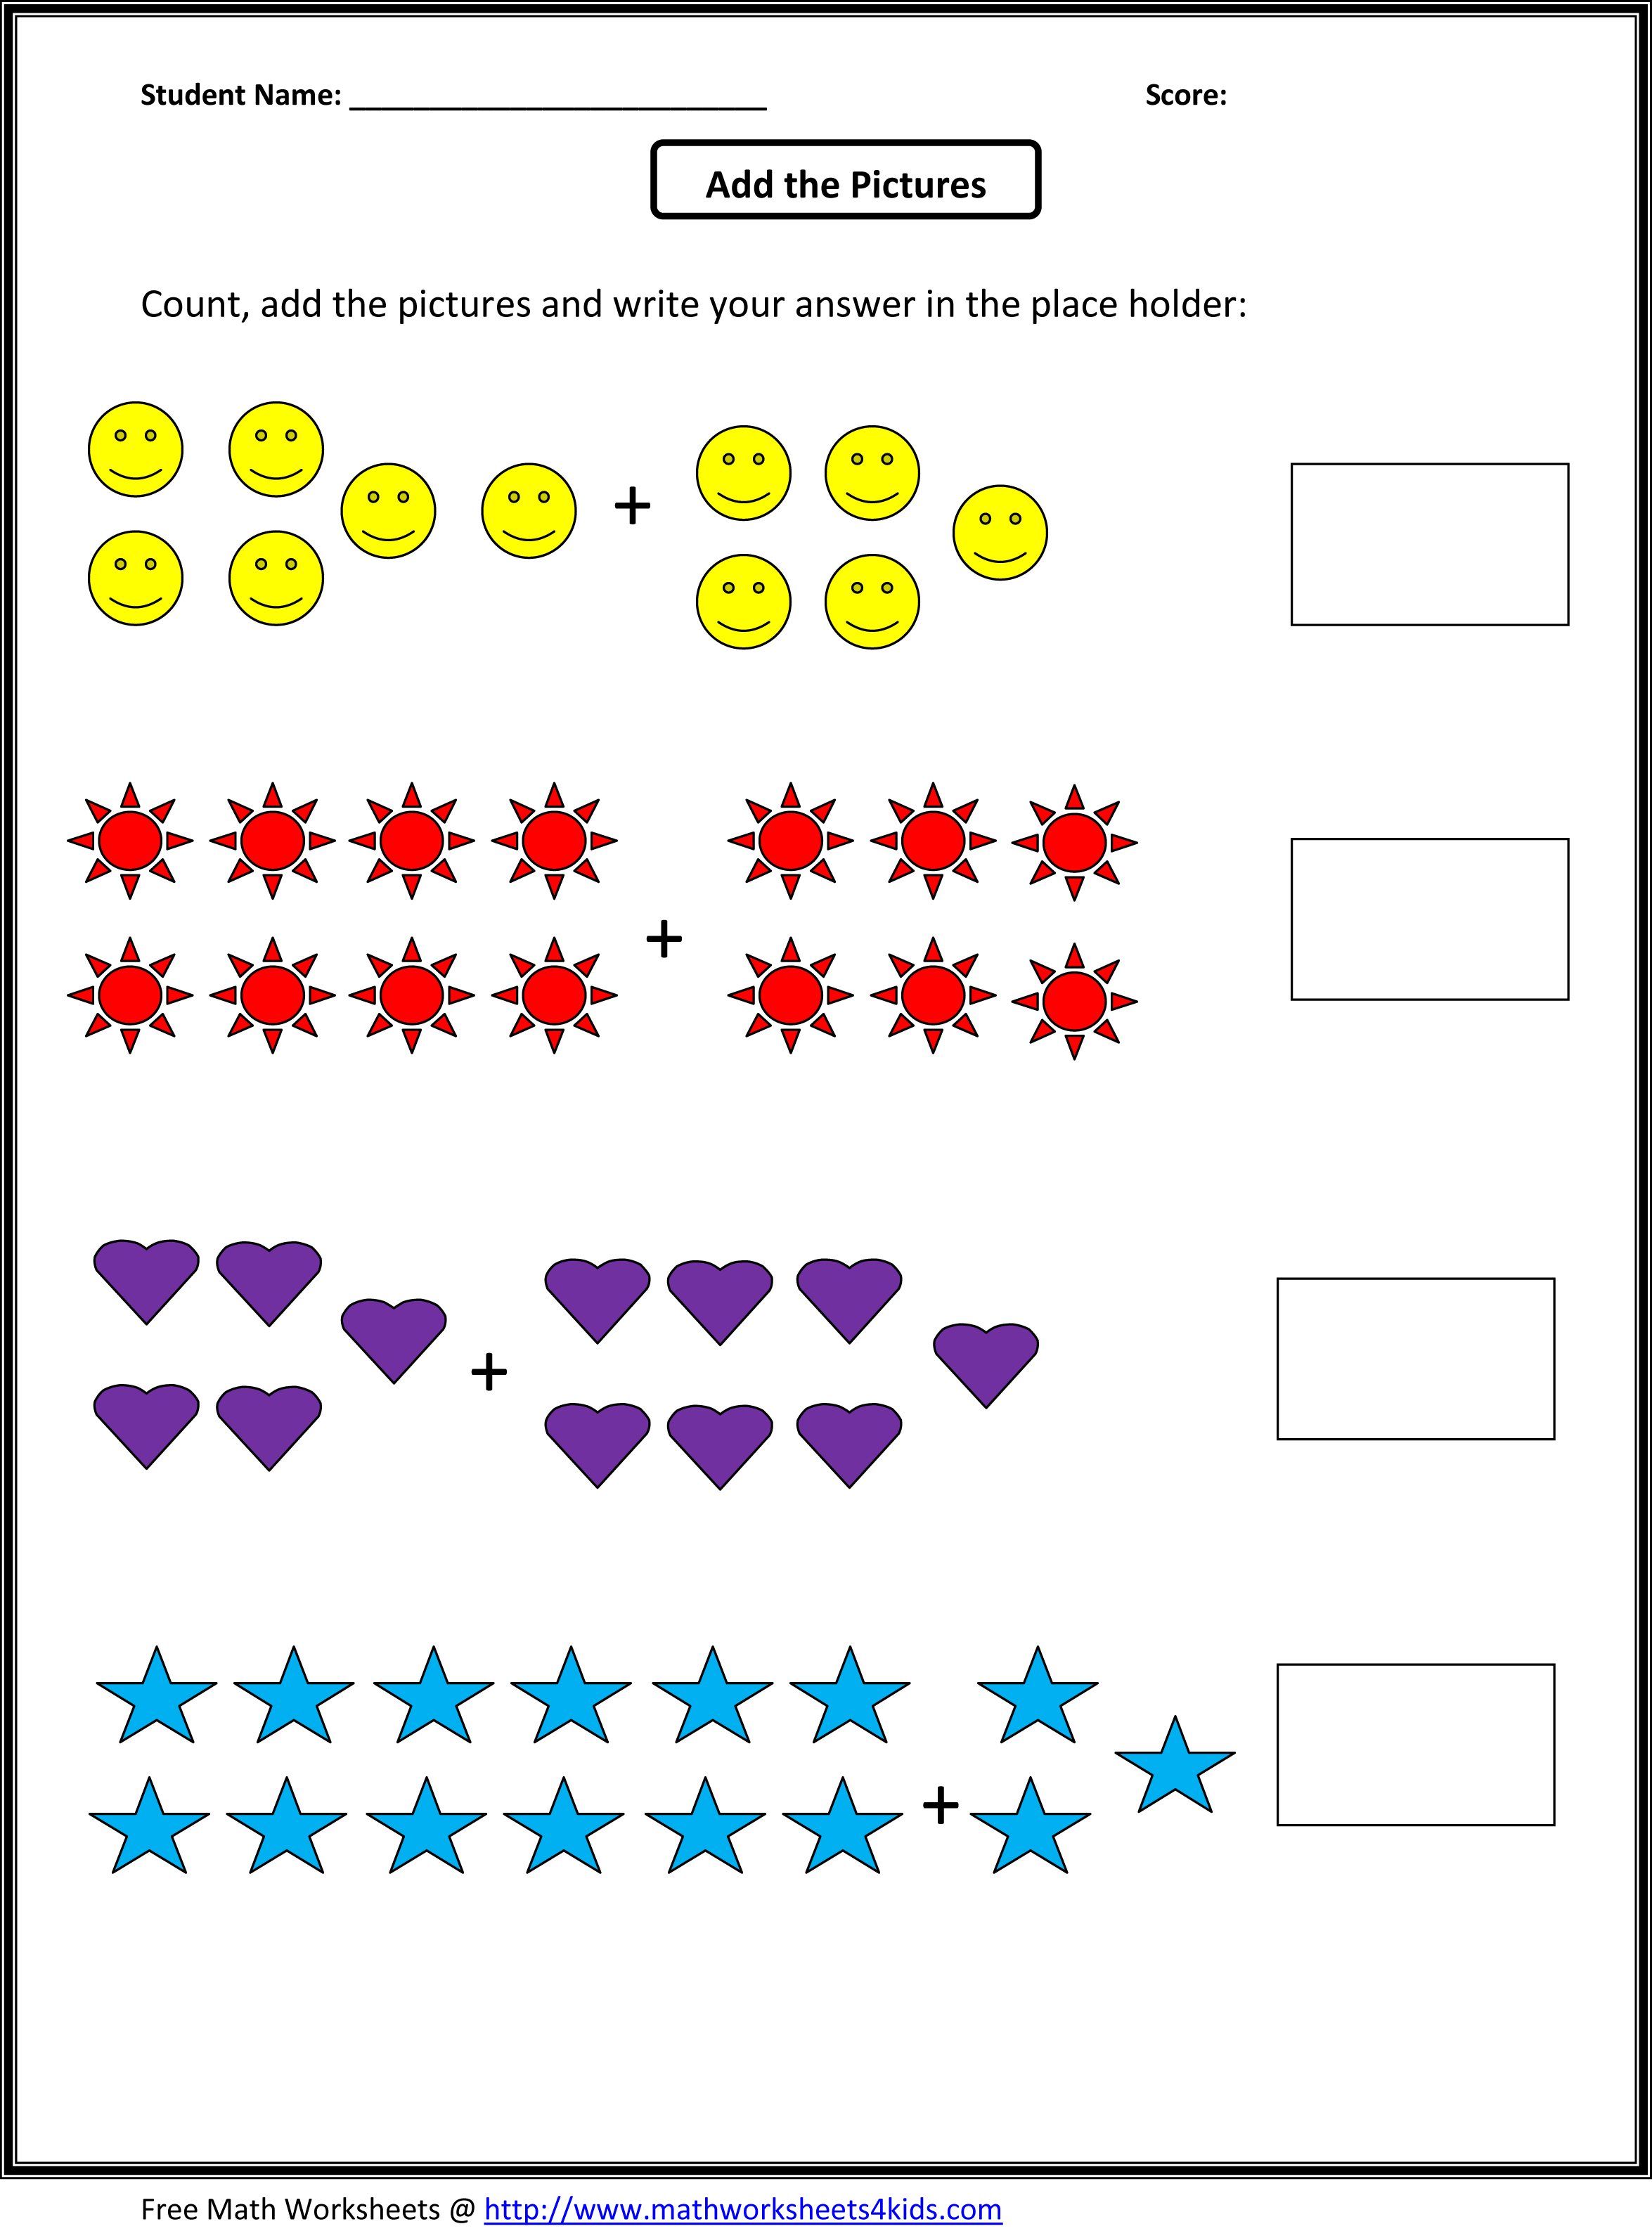 Weirdmailus  Personable Grade  Maths Worksheet  Reocurent With Lovable Math Worksheets For St Grade Free  Reocurent With Enchanting Latin Roots Worksheet Also Genetics Worksheet Middle School In Addition Global Winds Worksheet And Cpo Science Worksheet Answers As Well As New Year Worksheets Kindergarten Additionally Word Worksheets From Reocurentcom With Weirdmailus  Lovable Grade  Maths Worksheet  Reocurent With Enchanting Math Worksheets For St Grade Free  Reocurent And Personable Latin Roots Worksheet Also Genetics Worksheet Middle School In Addition Global Winds Worksheet From Reocurentcom